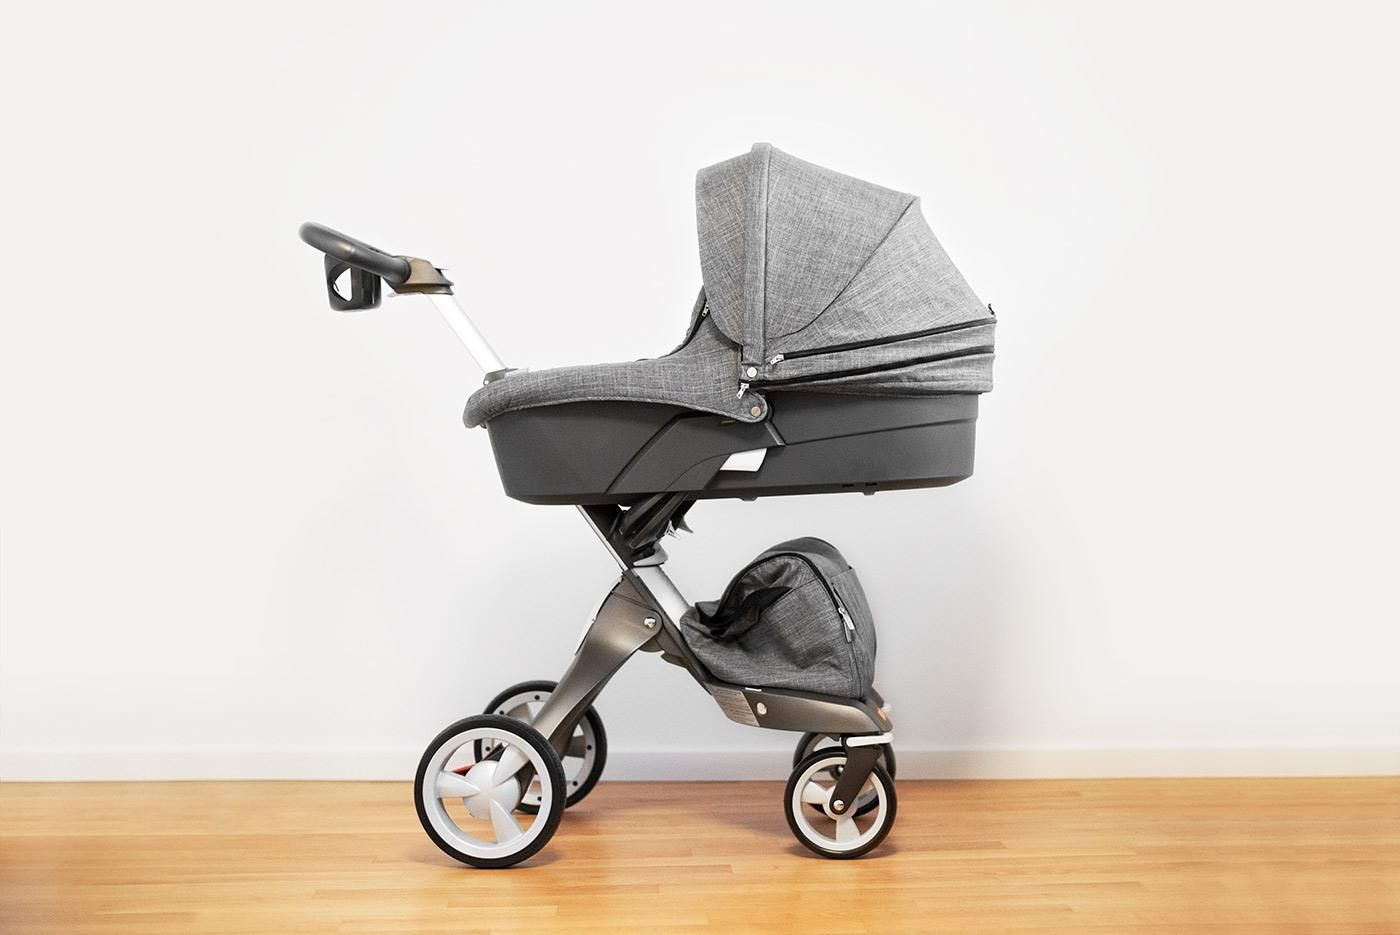 stokke xplory modern stroller with newborn baby carry cot  - stokke xplory modern stroller with newborn baby carry cot accessory  blackmelange fabric  chic